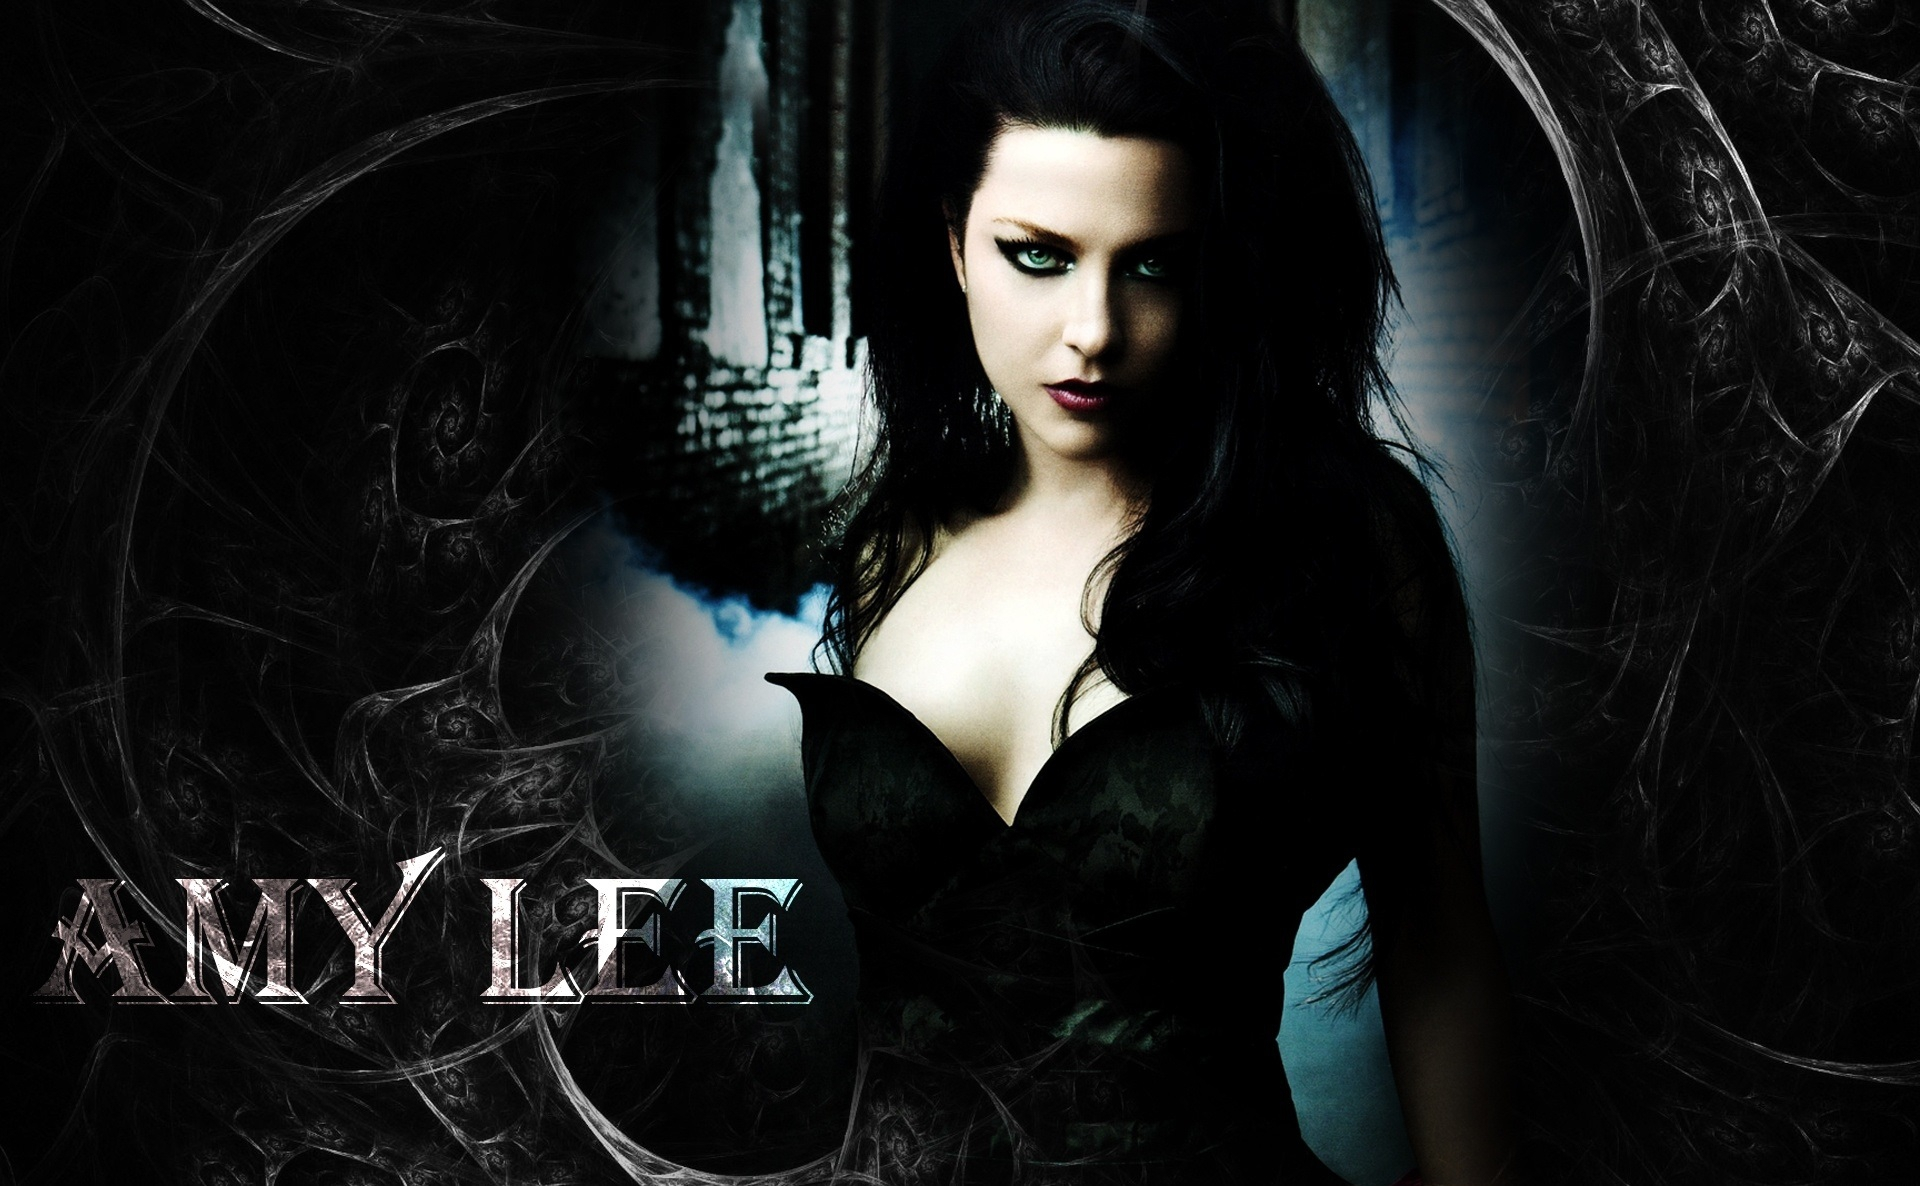 Evanescence Wallpapers Hd 1922x1186